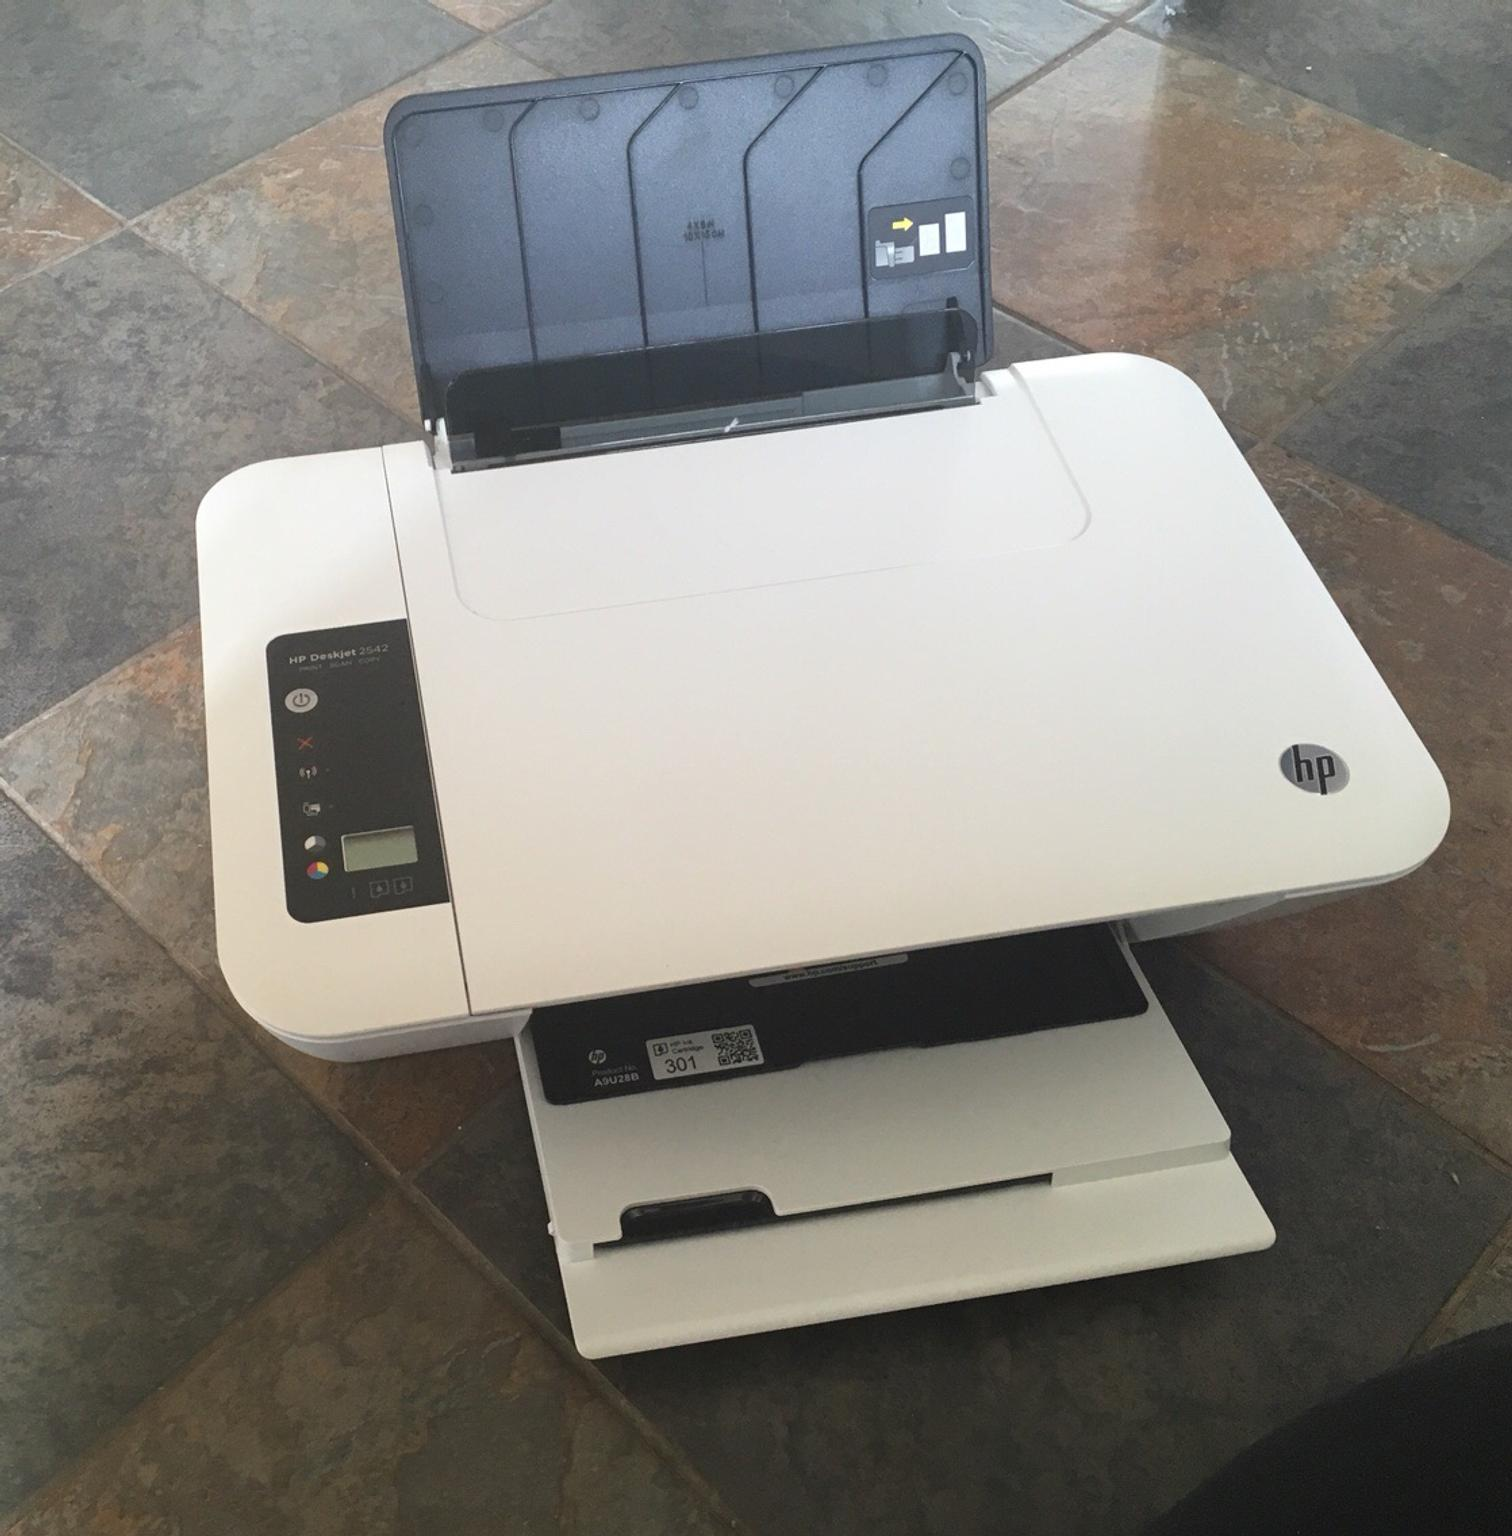 HP Deskjet 2542 printer